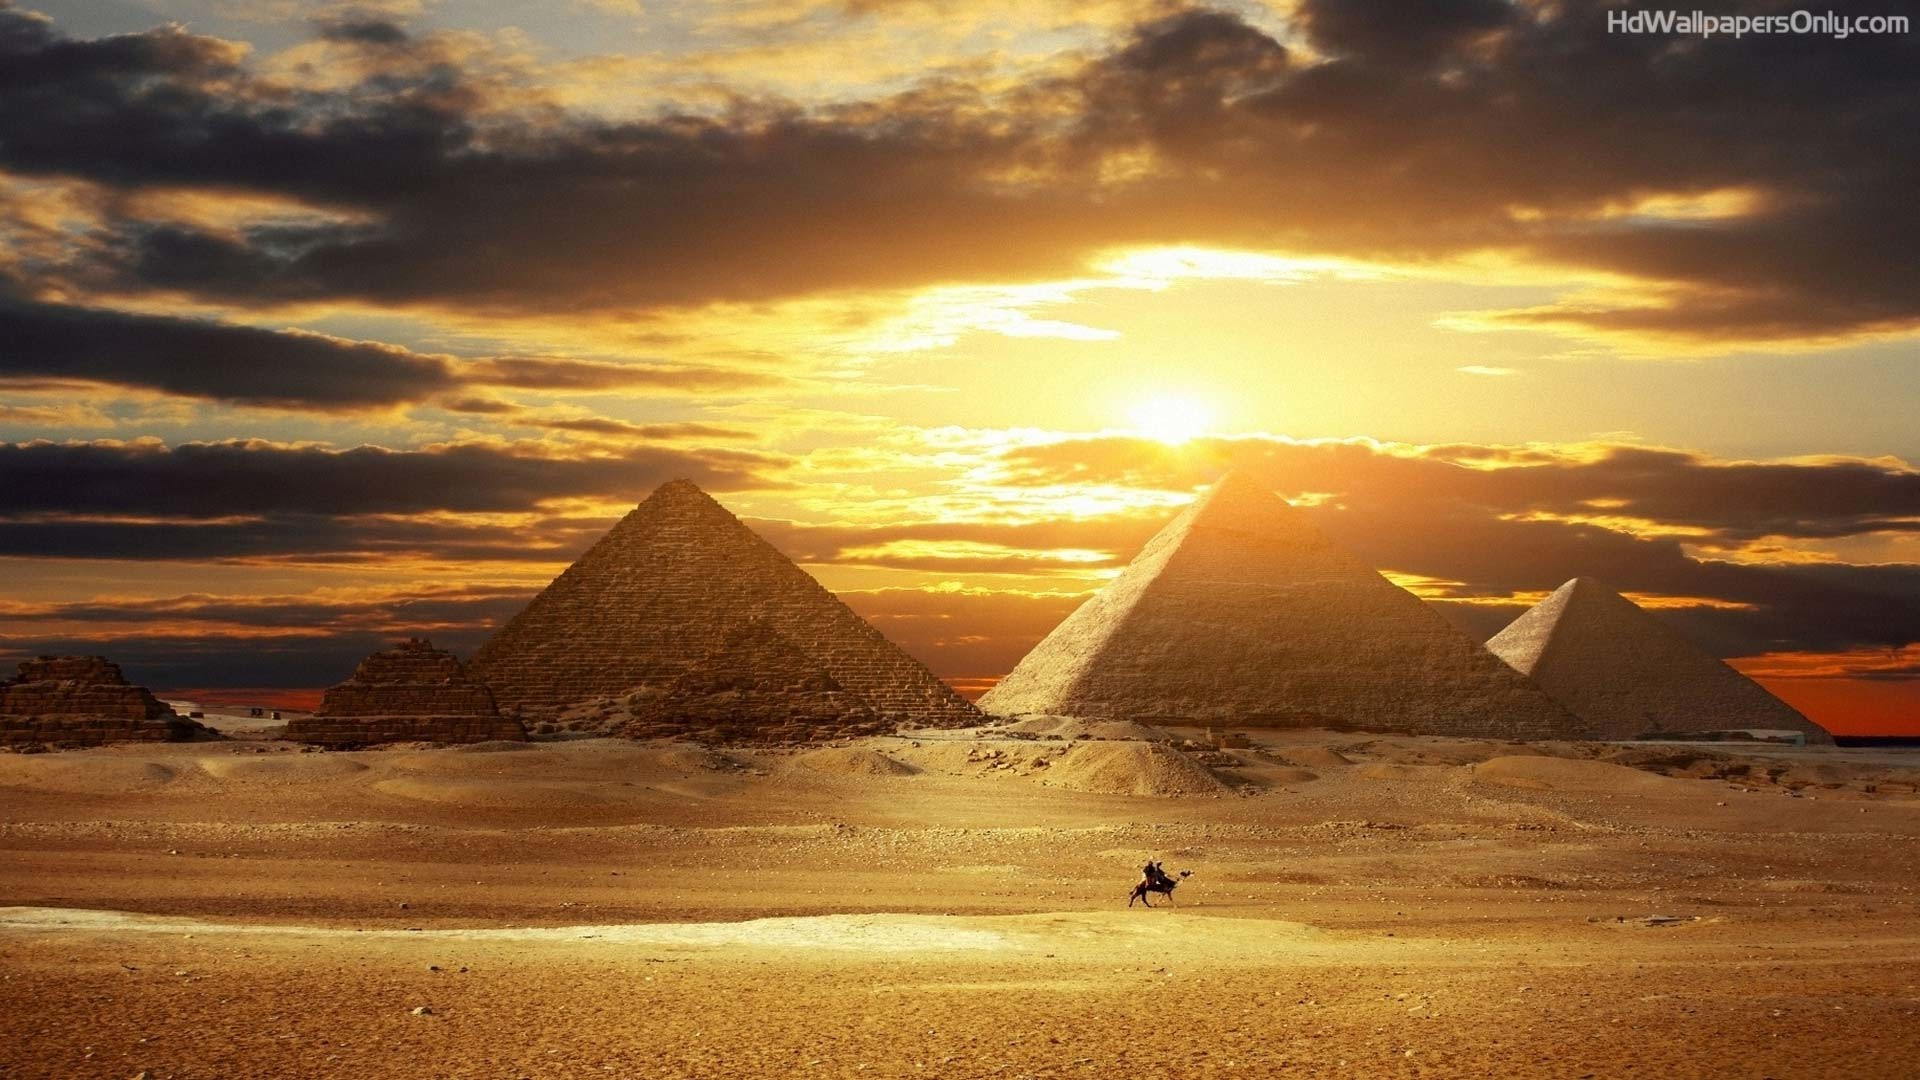 Ancient Egypt Pyramids HD Photos & Wallpapers Pyramids of Egypt.HD .